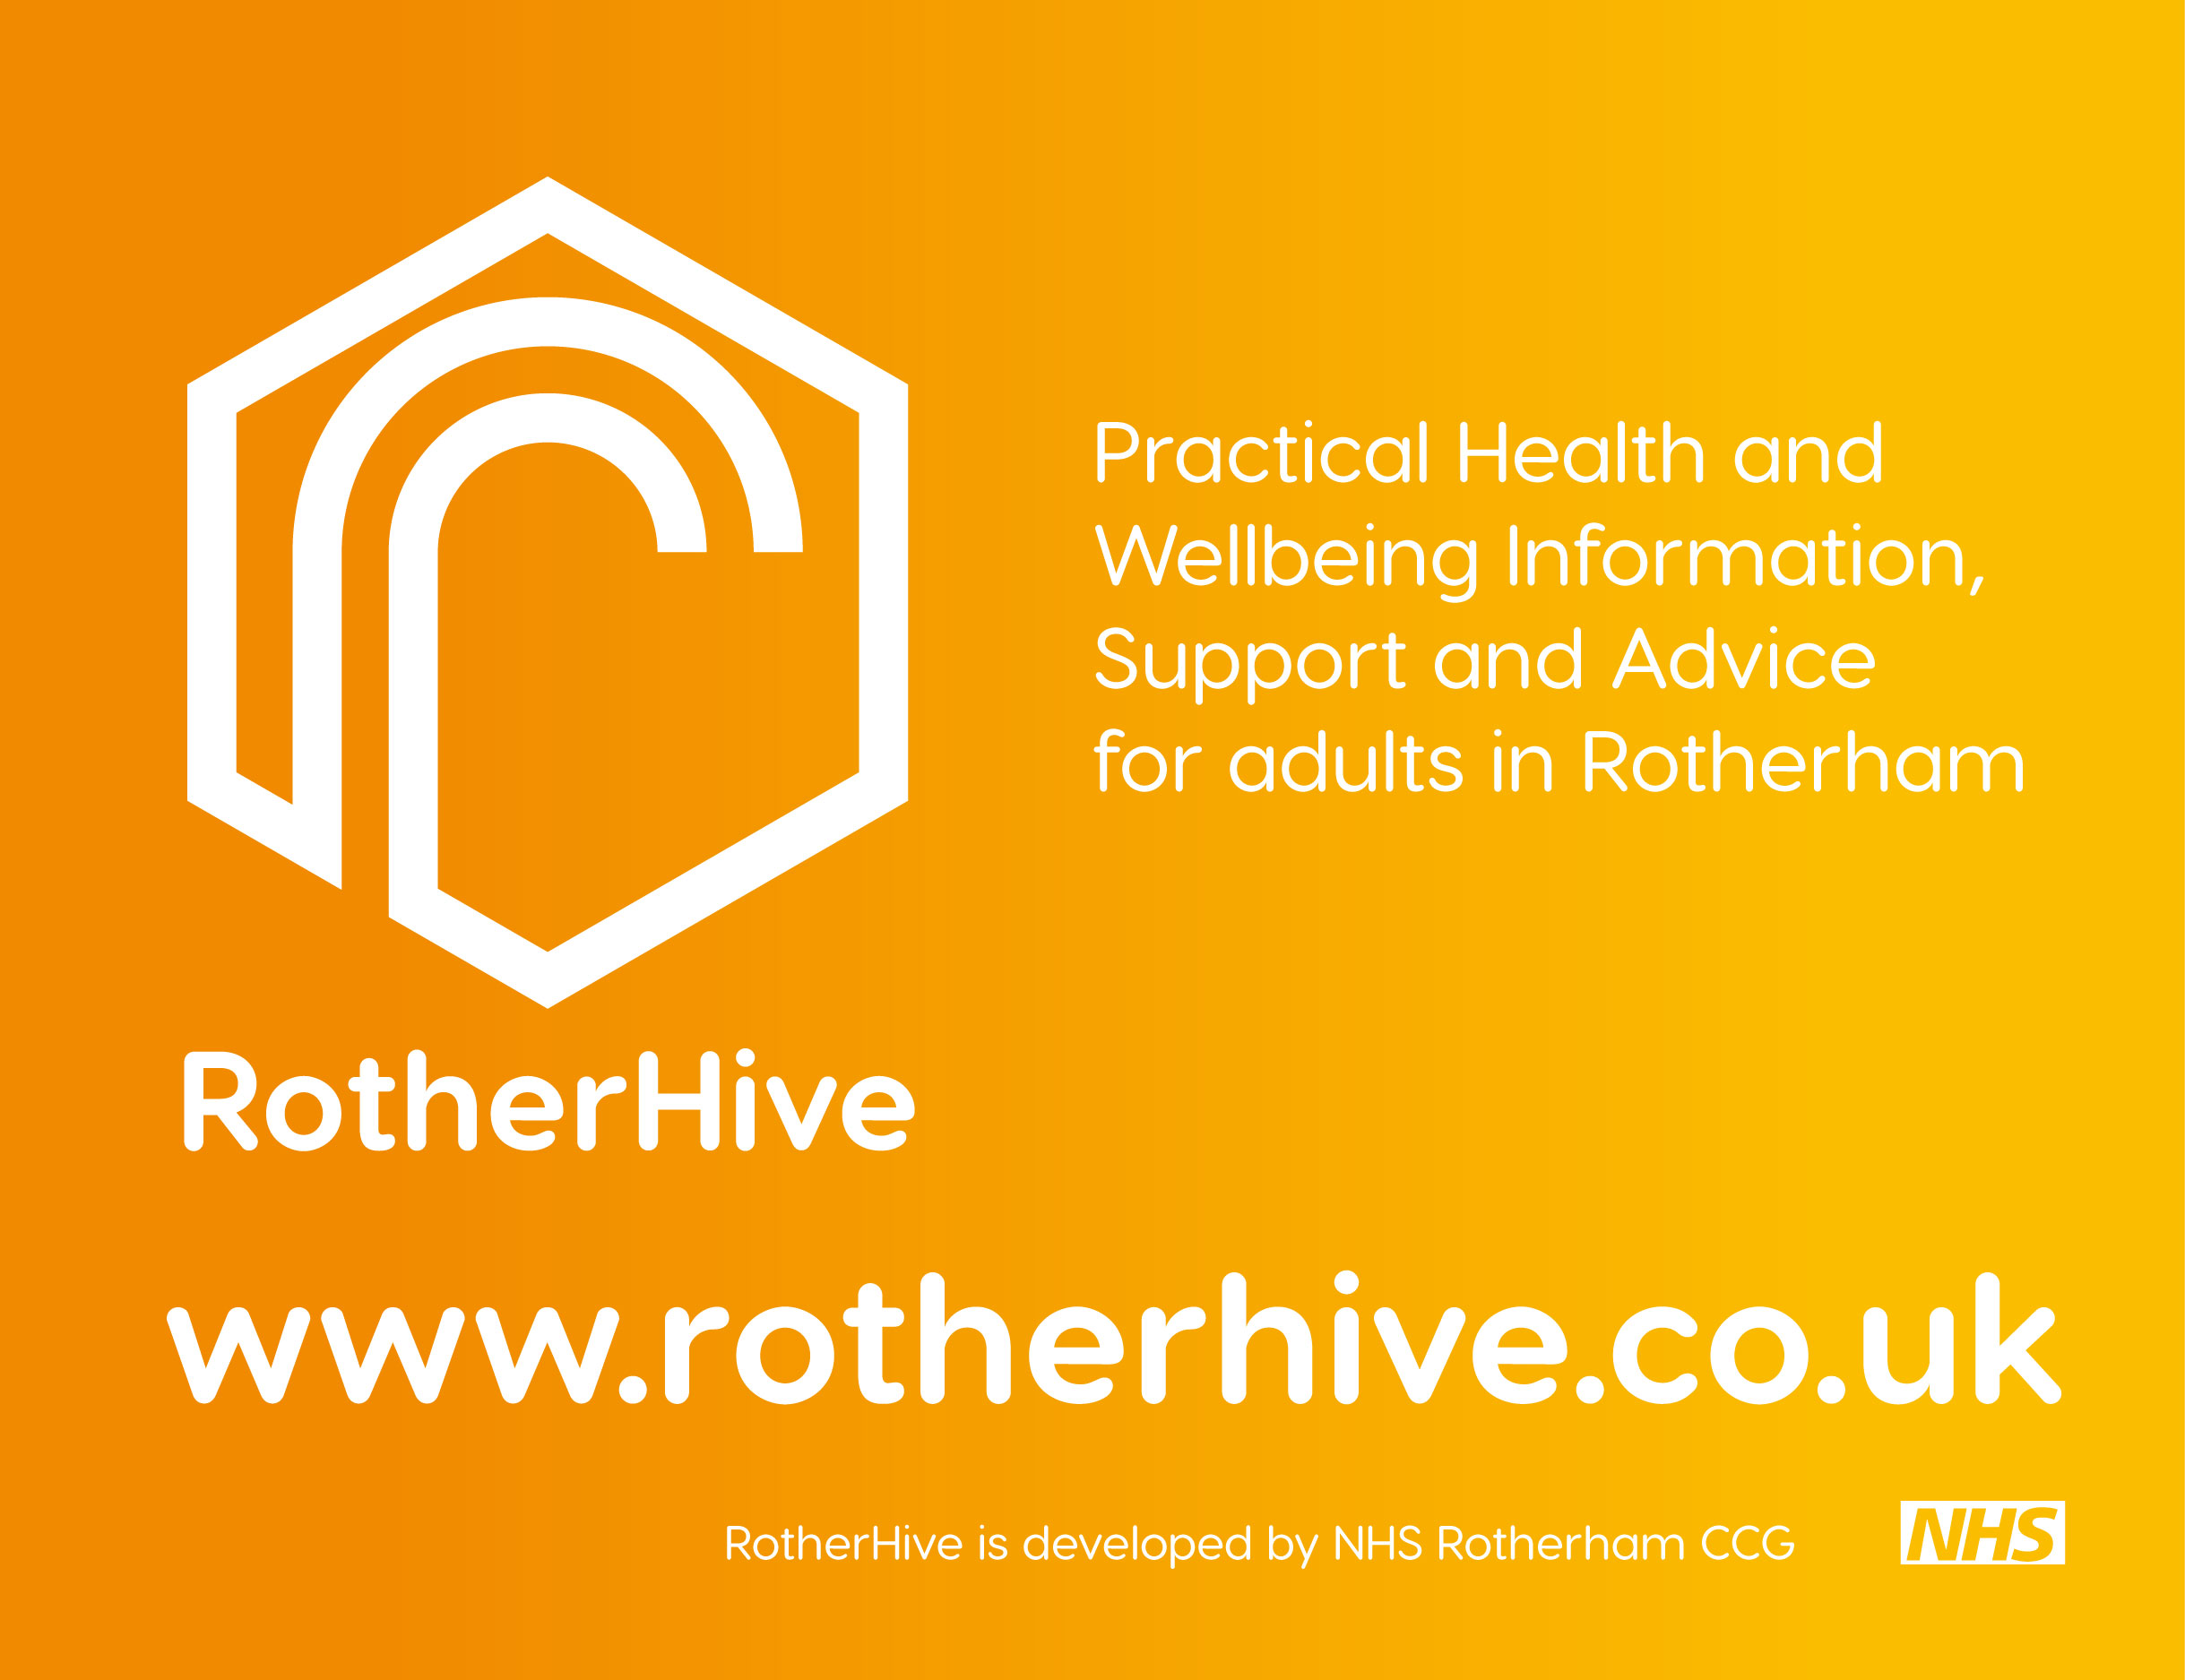 Rotherhive